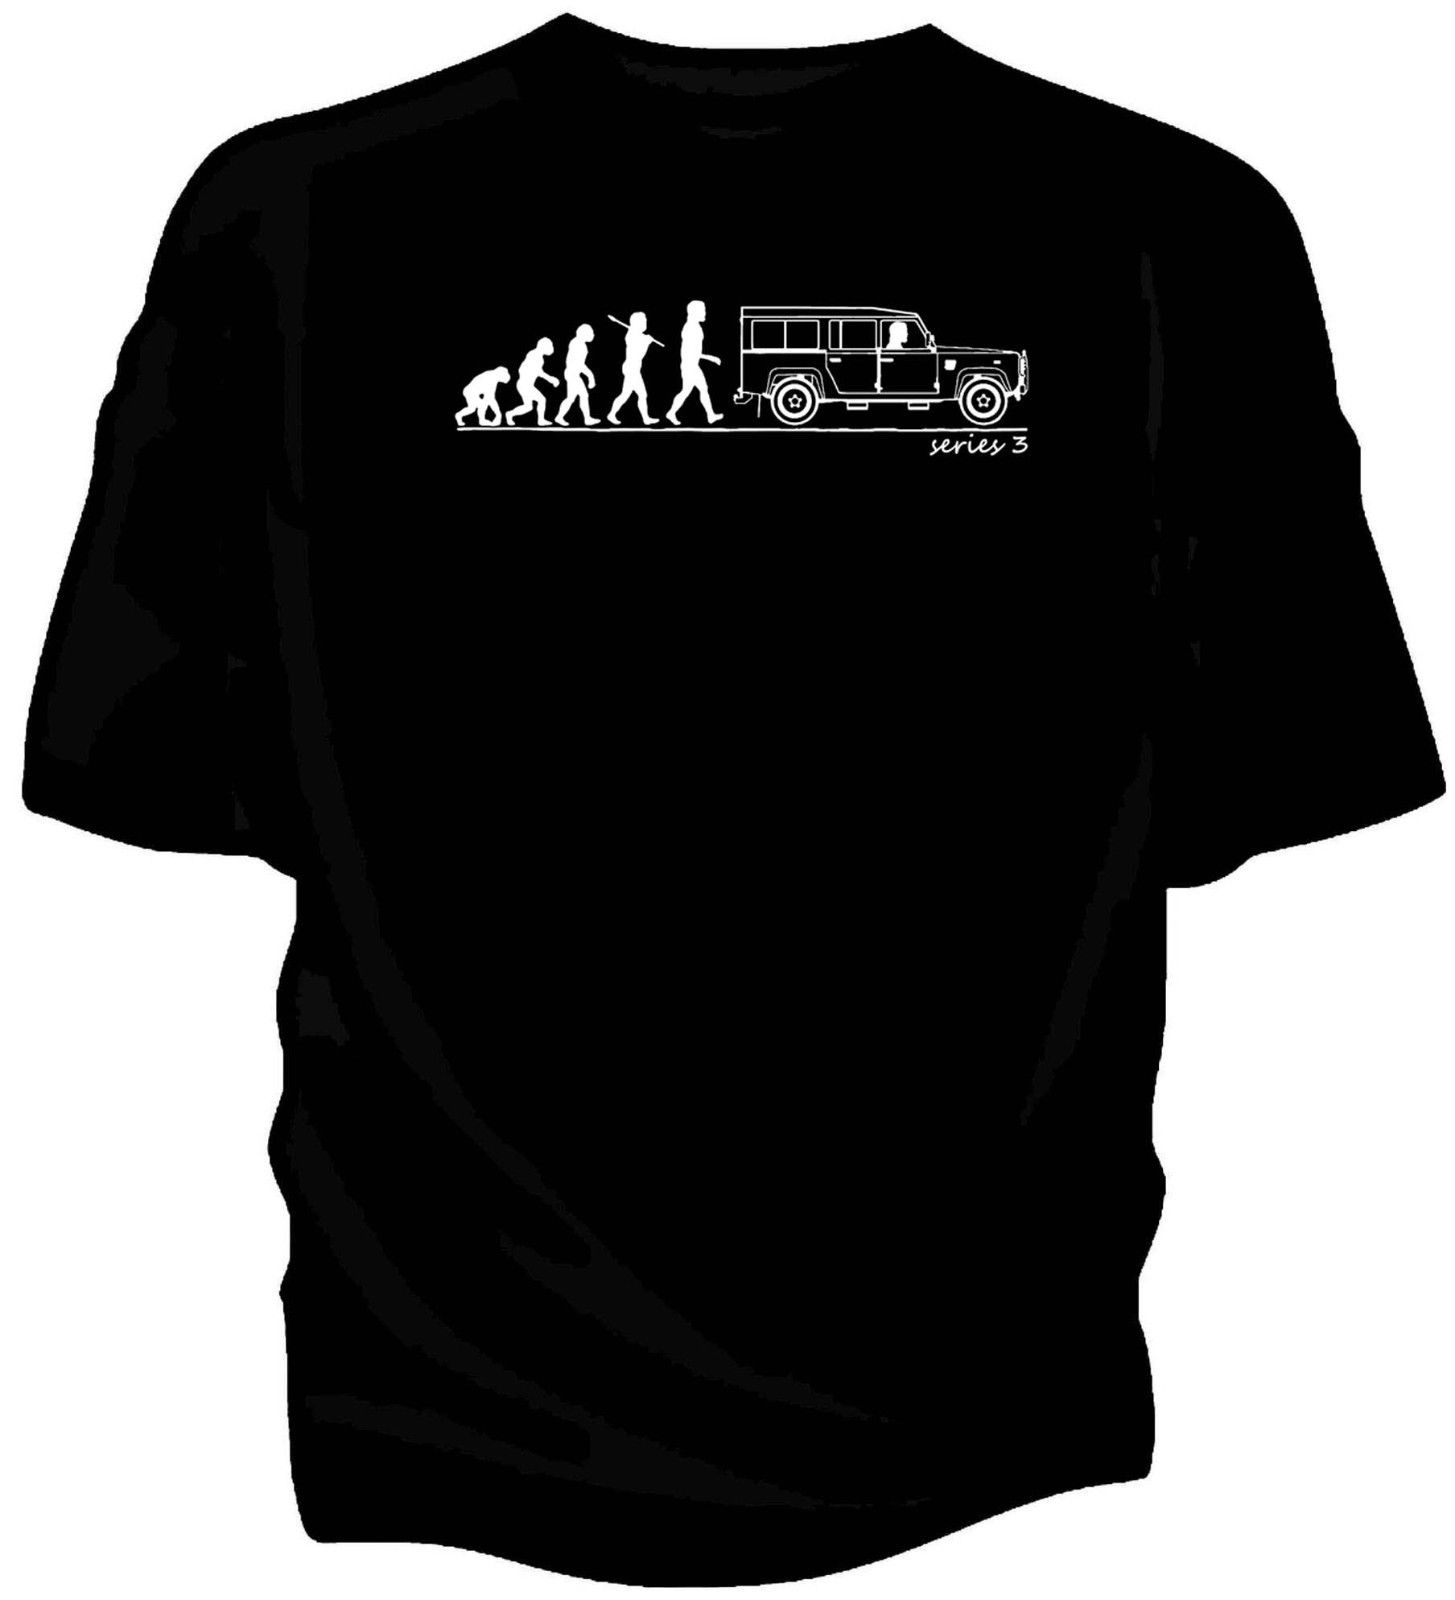 Evolution of Man, Land Rover series 3 LWB classic car t-shirt.